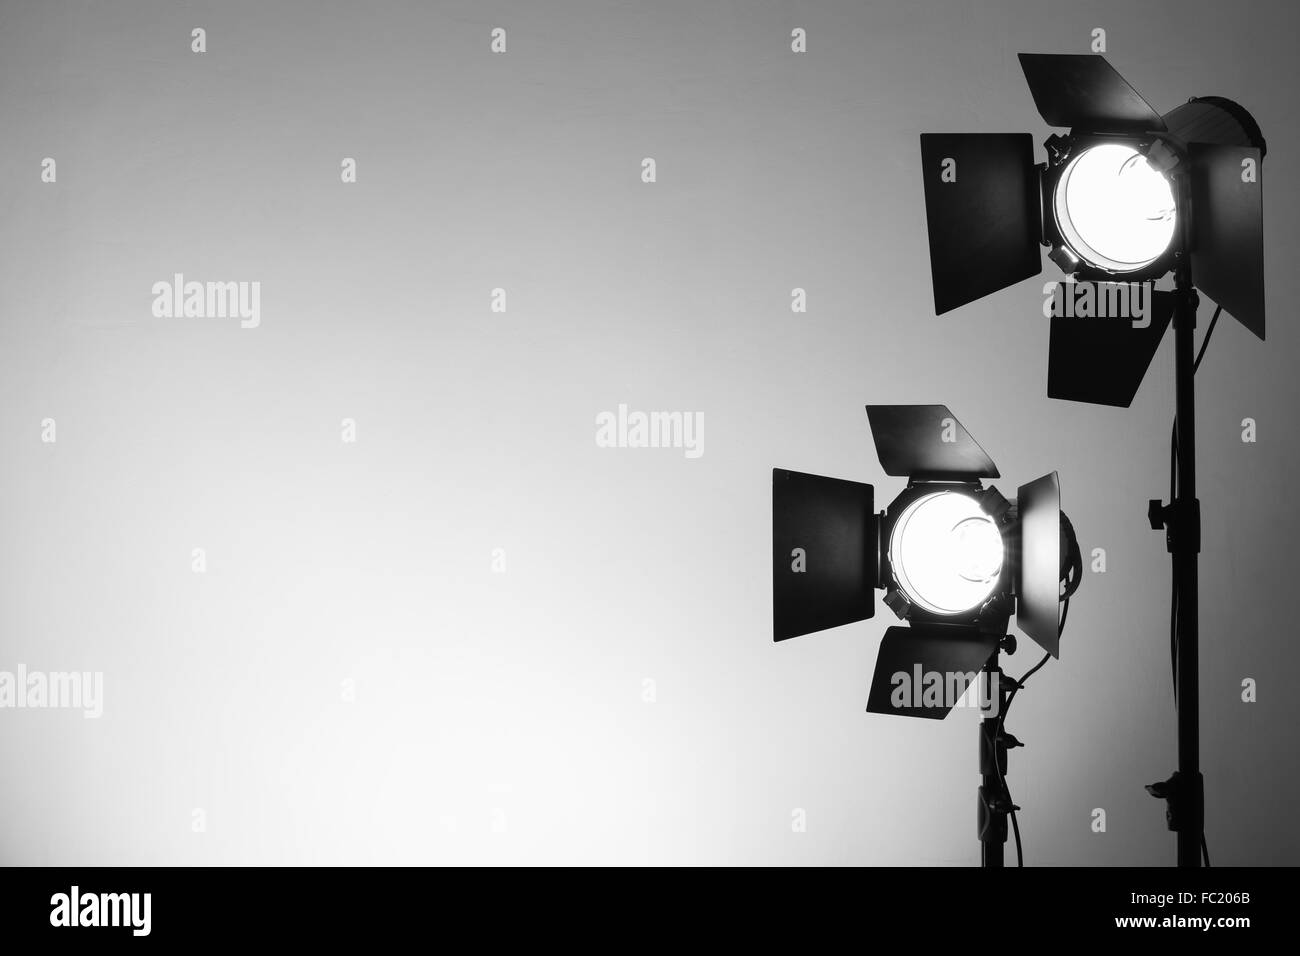 Empty photo studio with lighting equipment & Empty photo studio with lighting equipment Stock Photo: 93471795 - Alamy